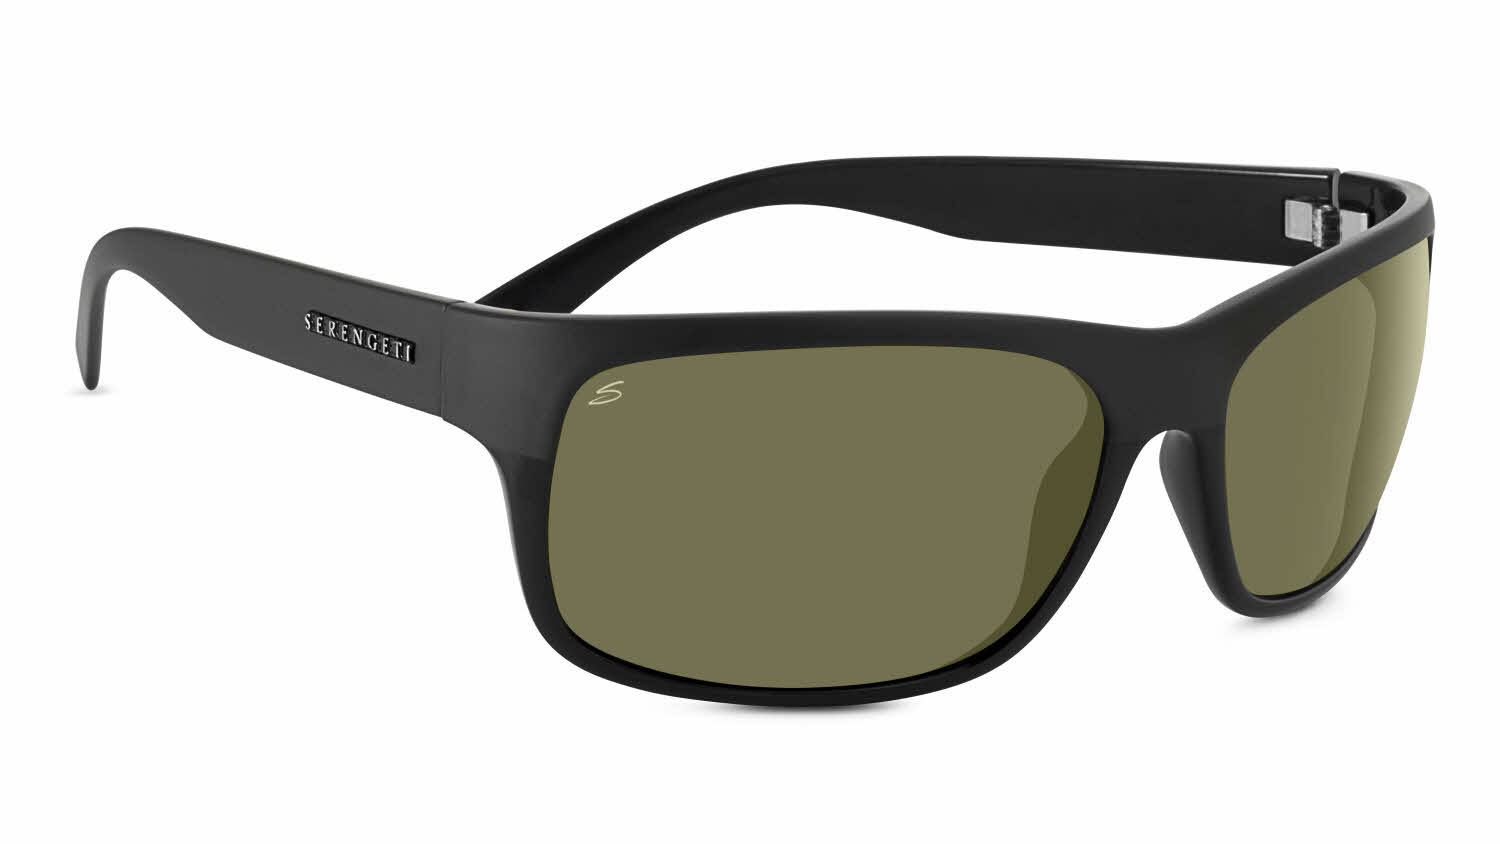 Serengeti Pistoia Prescription Sunglasses